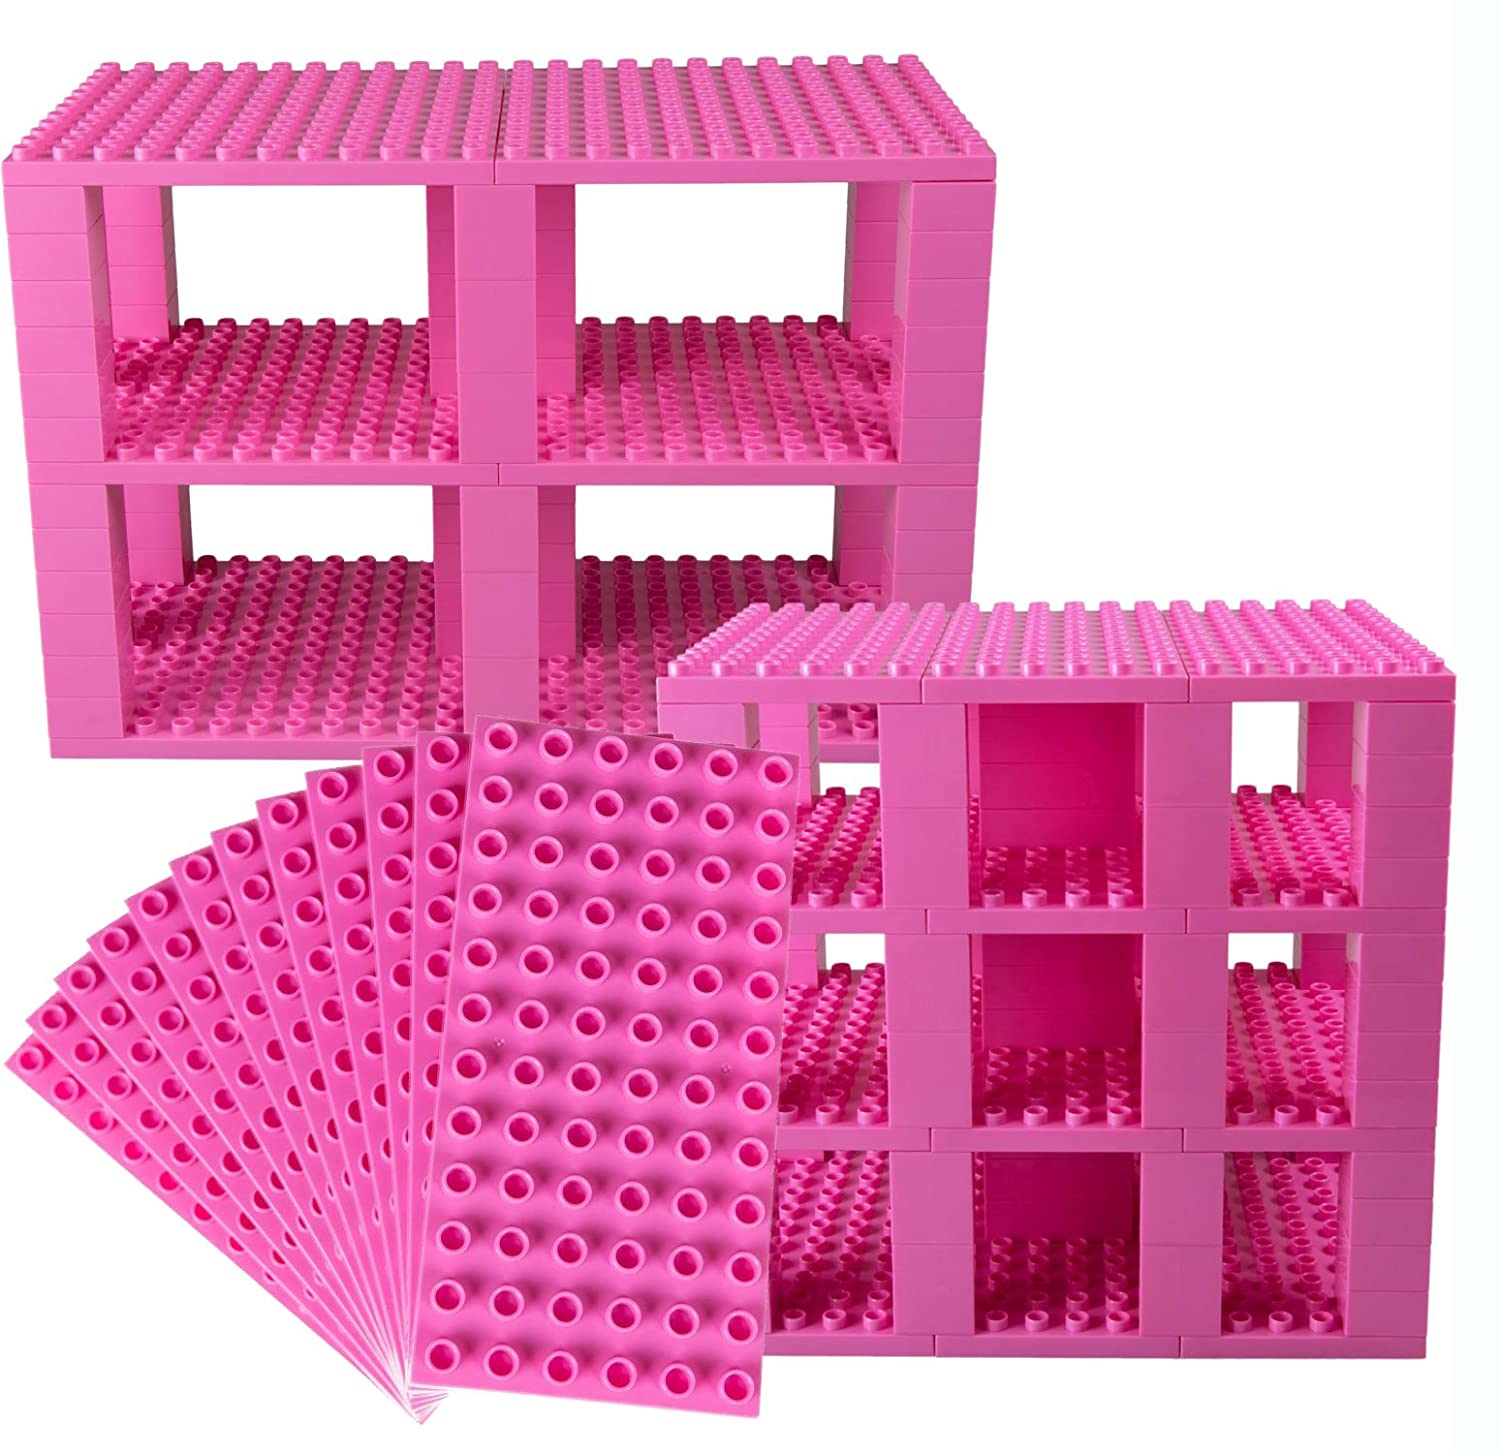 Classic Big Briks 96 Piece Set by Strictly Briks | 100% Compatible with All Major Brands | Tower Construction | Large Pegs for Toddlers | Ages 3+ | Building Bricks & Baseplates | Pink Review